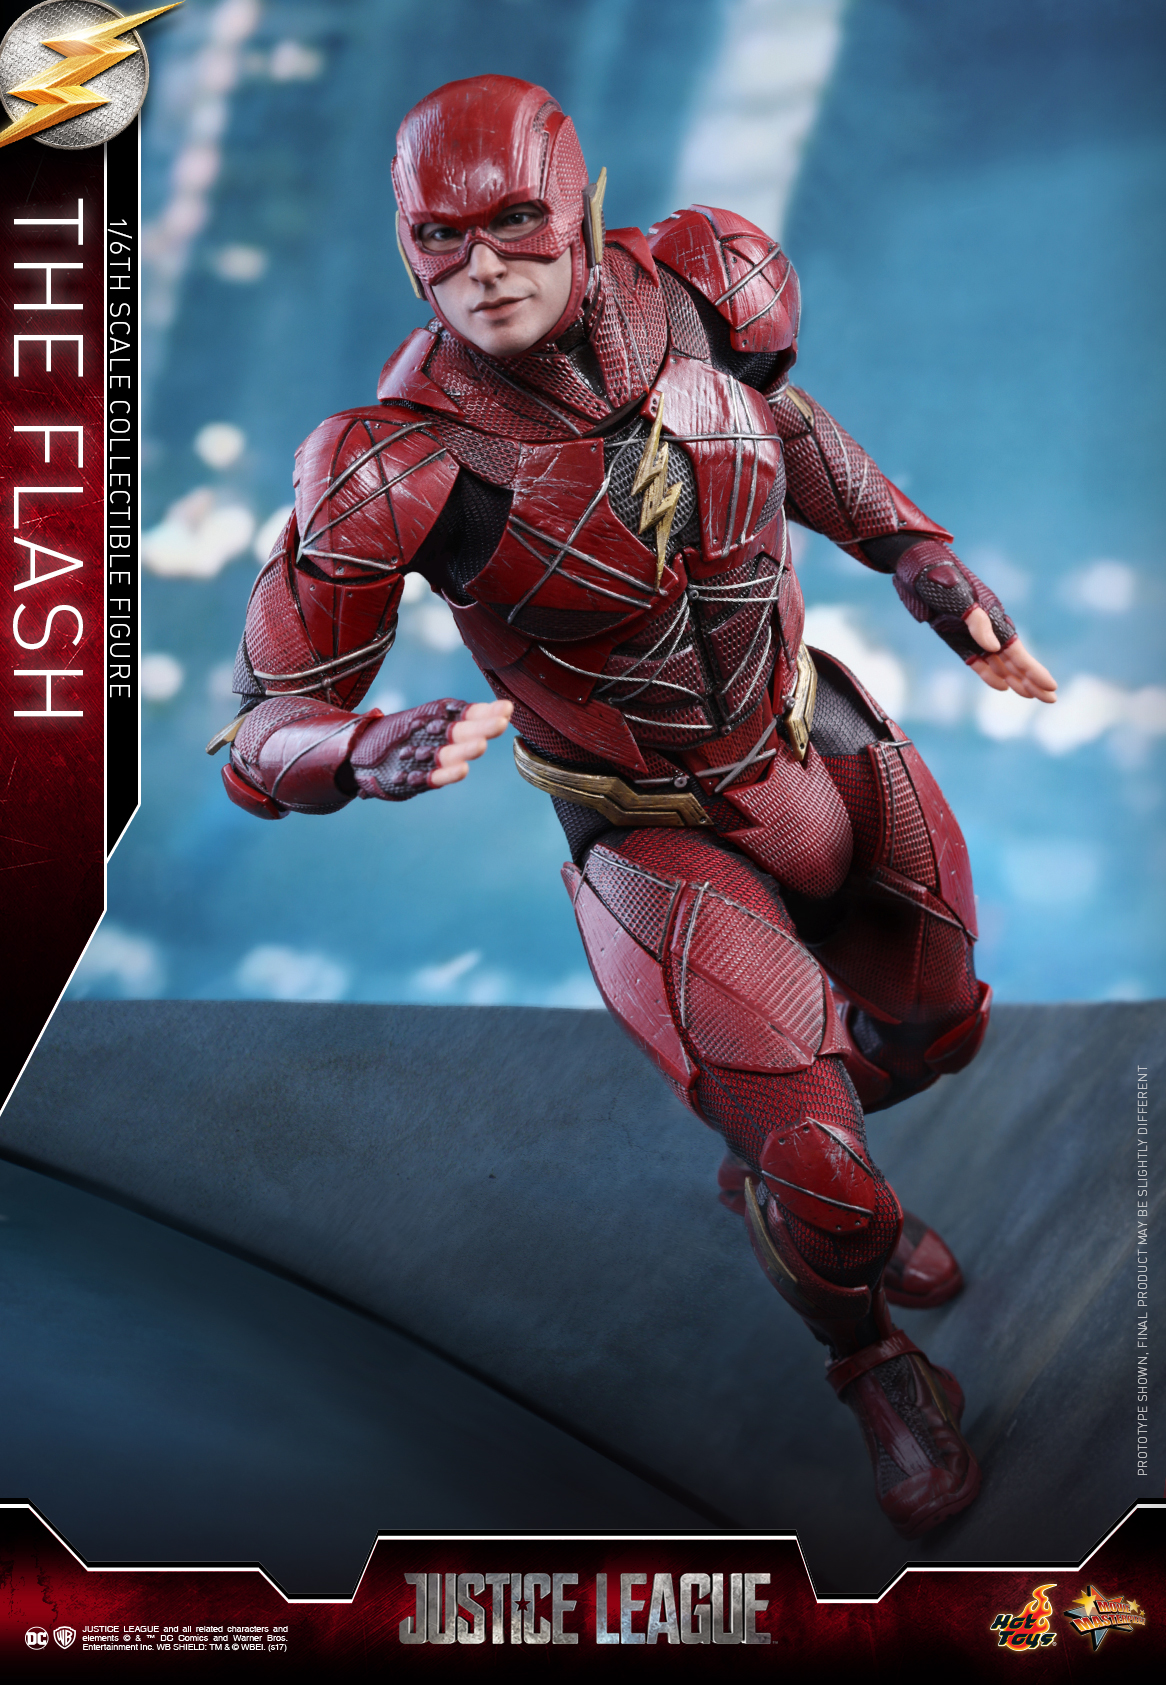 Hot Toys - Justice League - The Flash Collectible Figure_PR01.jpg